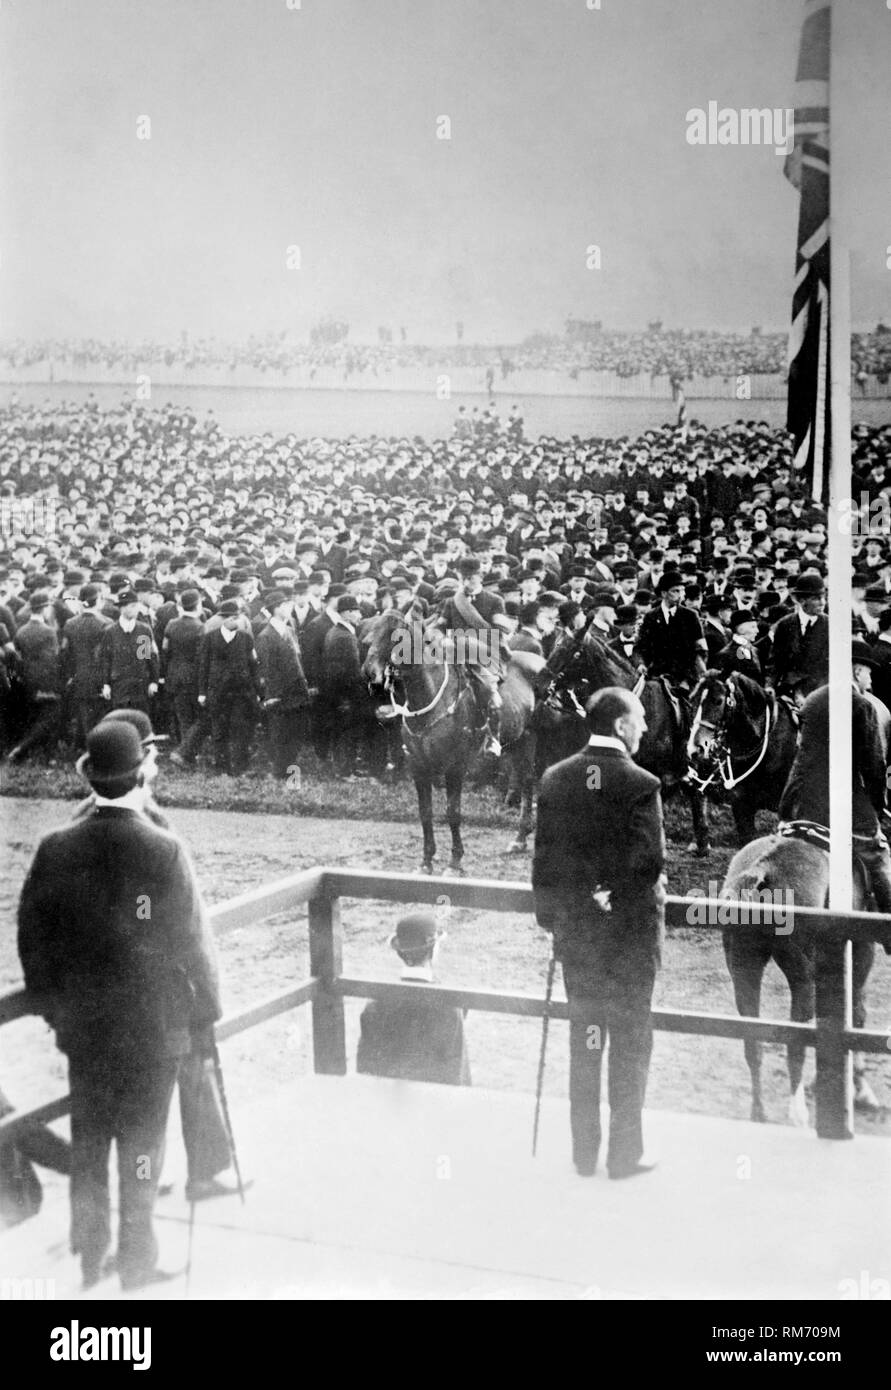 Sir Edward Carson leader of the Irish Unionist Party addresses the Ulster Volunteers militia in Belfast during the home rule crisis in 1914. The ulster volunteers were a paramilitary group formed by ulster protestants to fight home rule in Ireland when the first world war broke out and they formed the ulster volunteer 36th ulster division of the British Army. - Stock Image